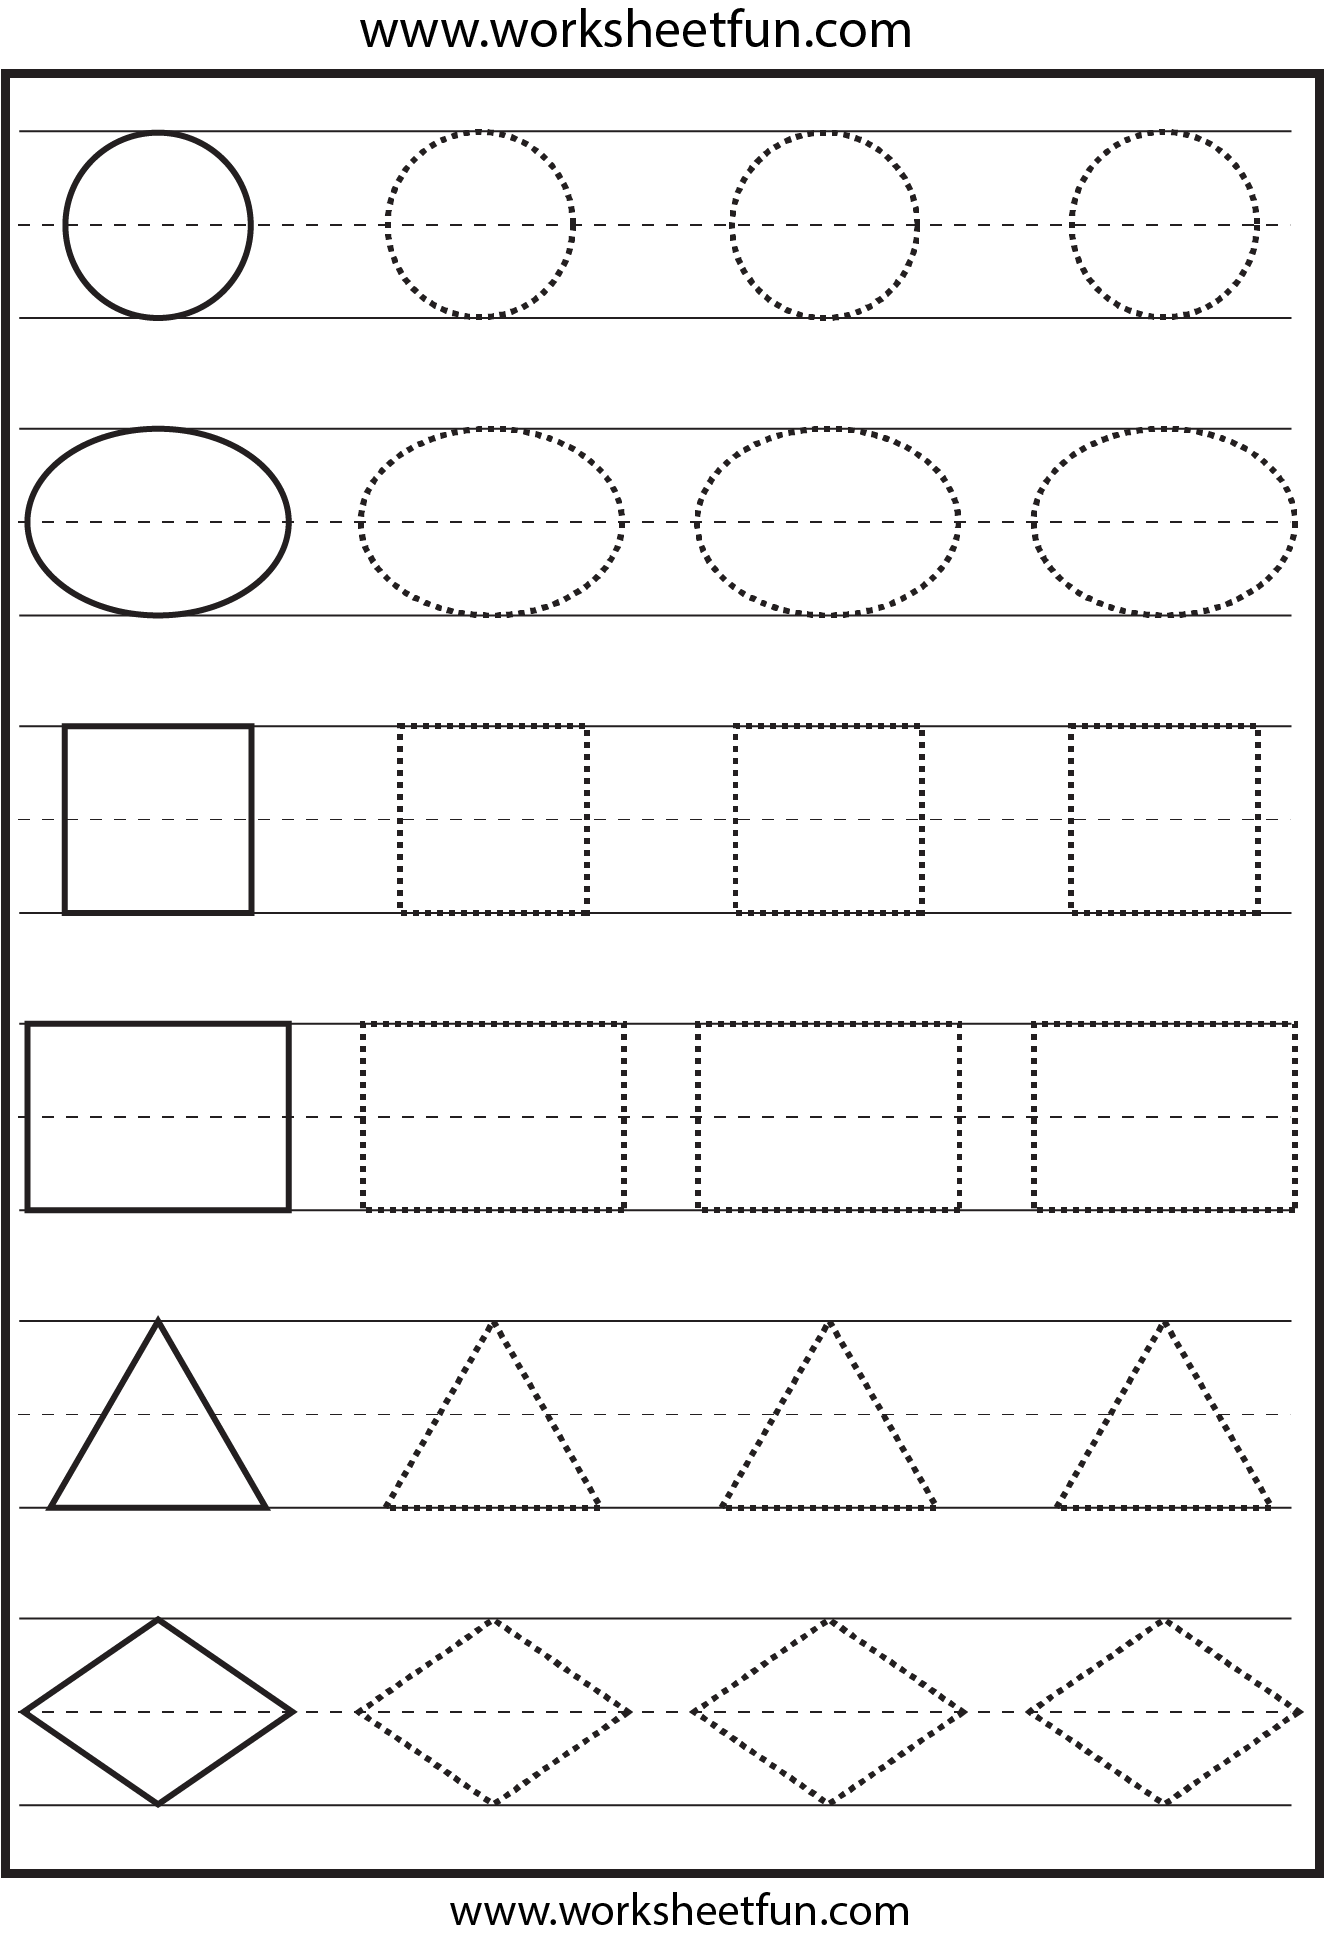 Shapes Tracing 1 Worksheet Free Printable Worksheets Worksheetfun